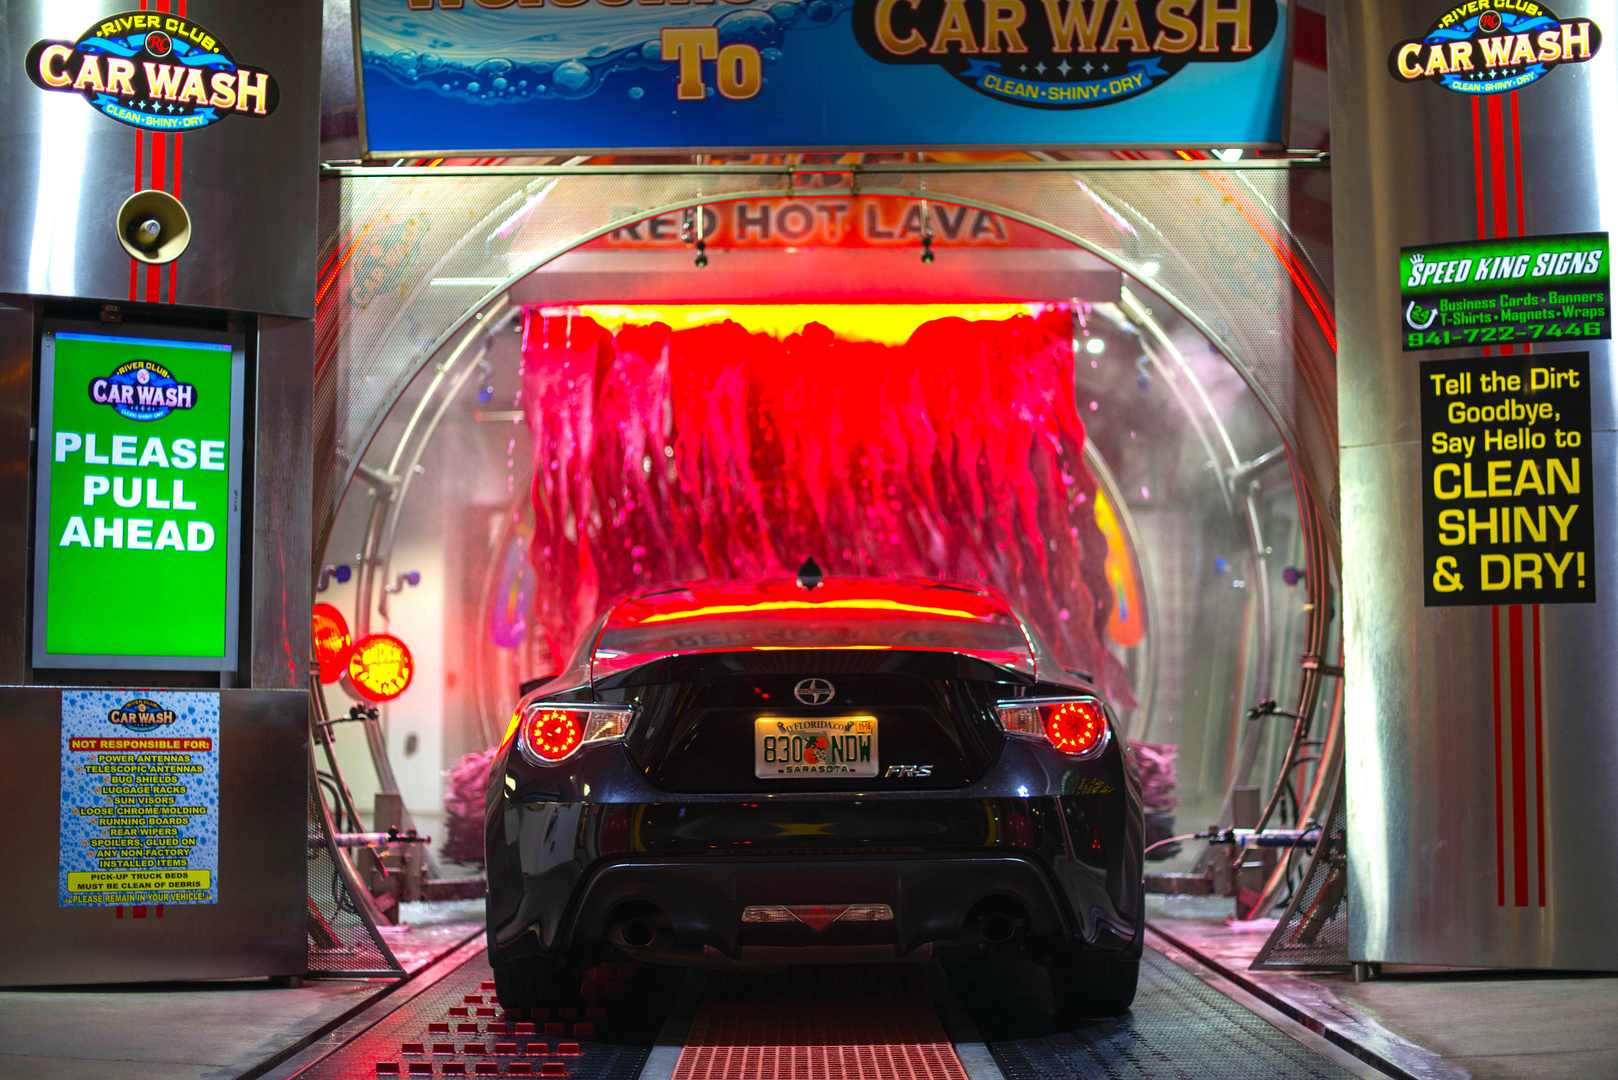 River club car wash best express car wash 365a43f1a76a06068b6a4f910ecb898c c0f91360b8cf1467bbaf62560365da7d dc3b18a02009dc2cf46fdbc8644dcfe9 solutioingenieria Image collections